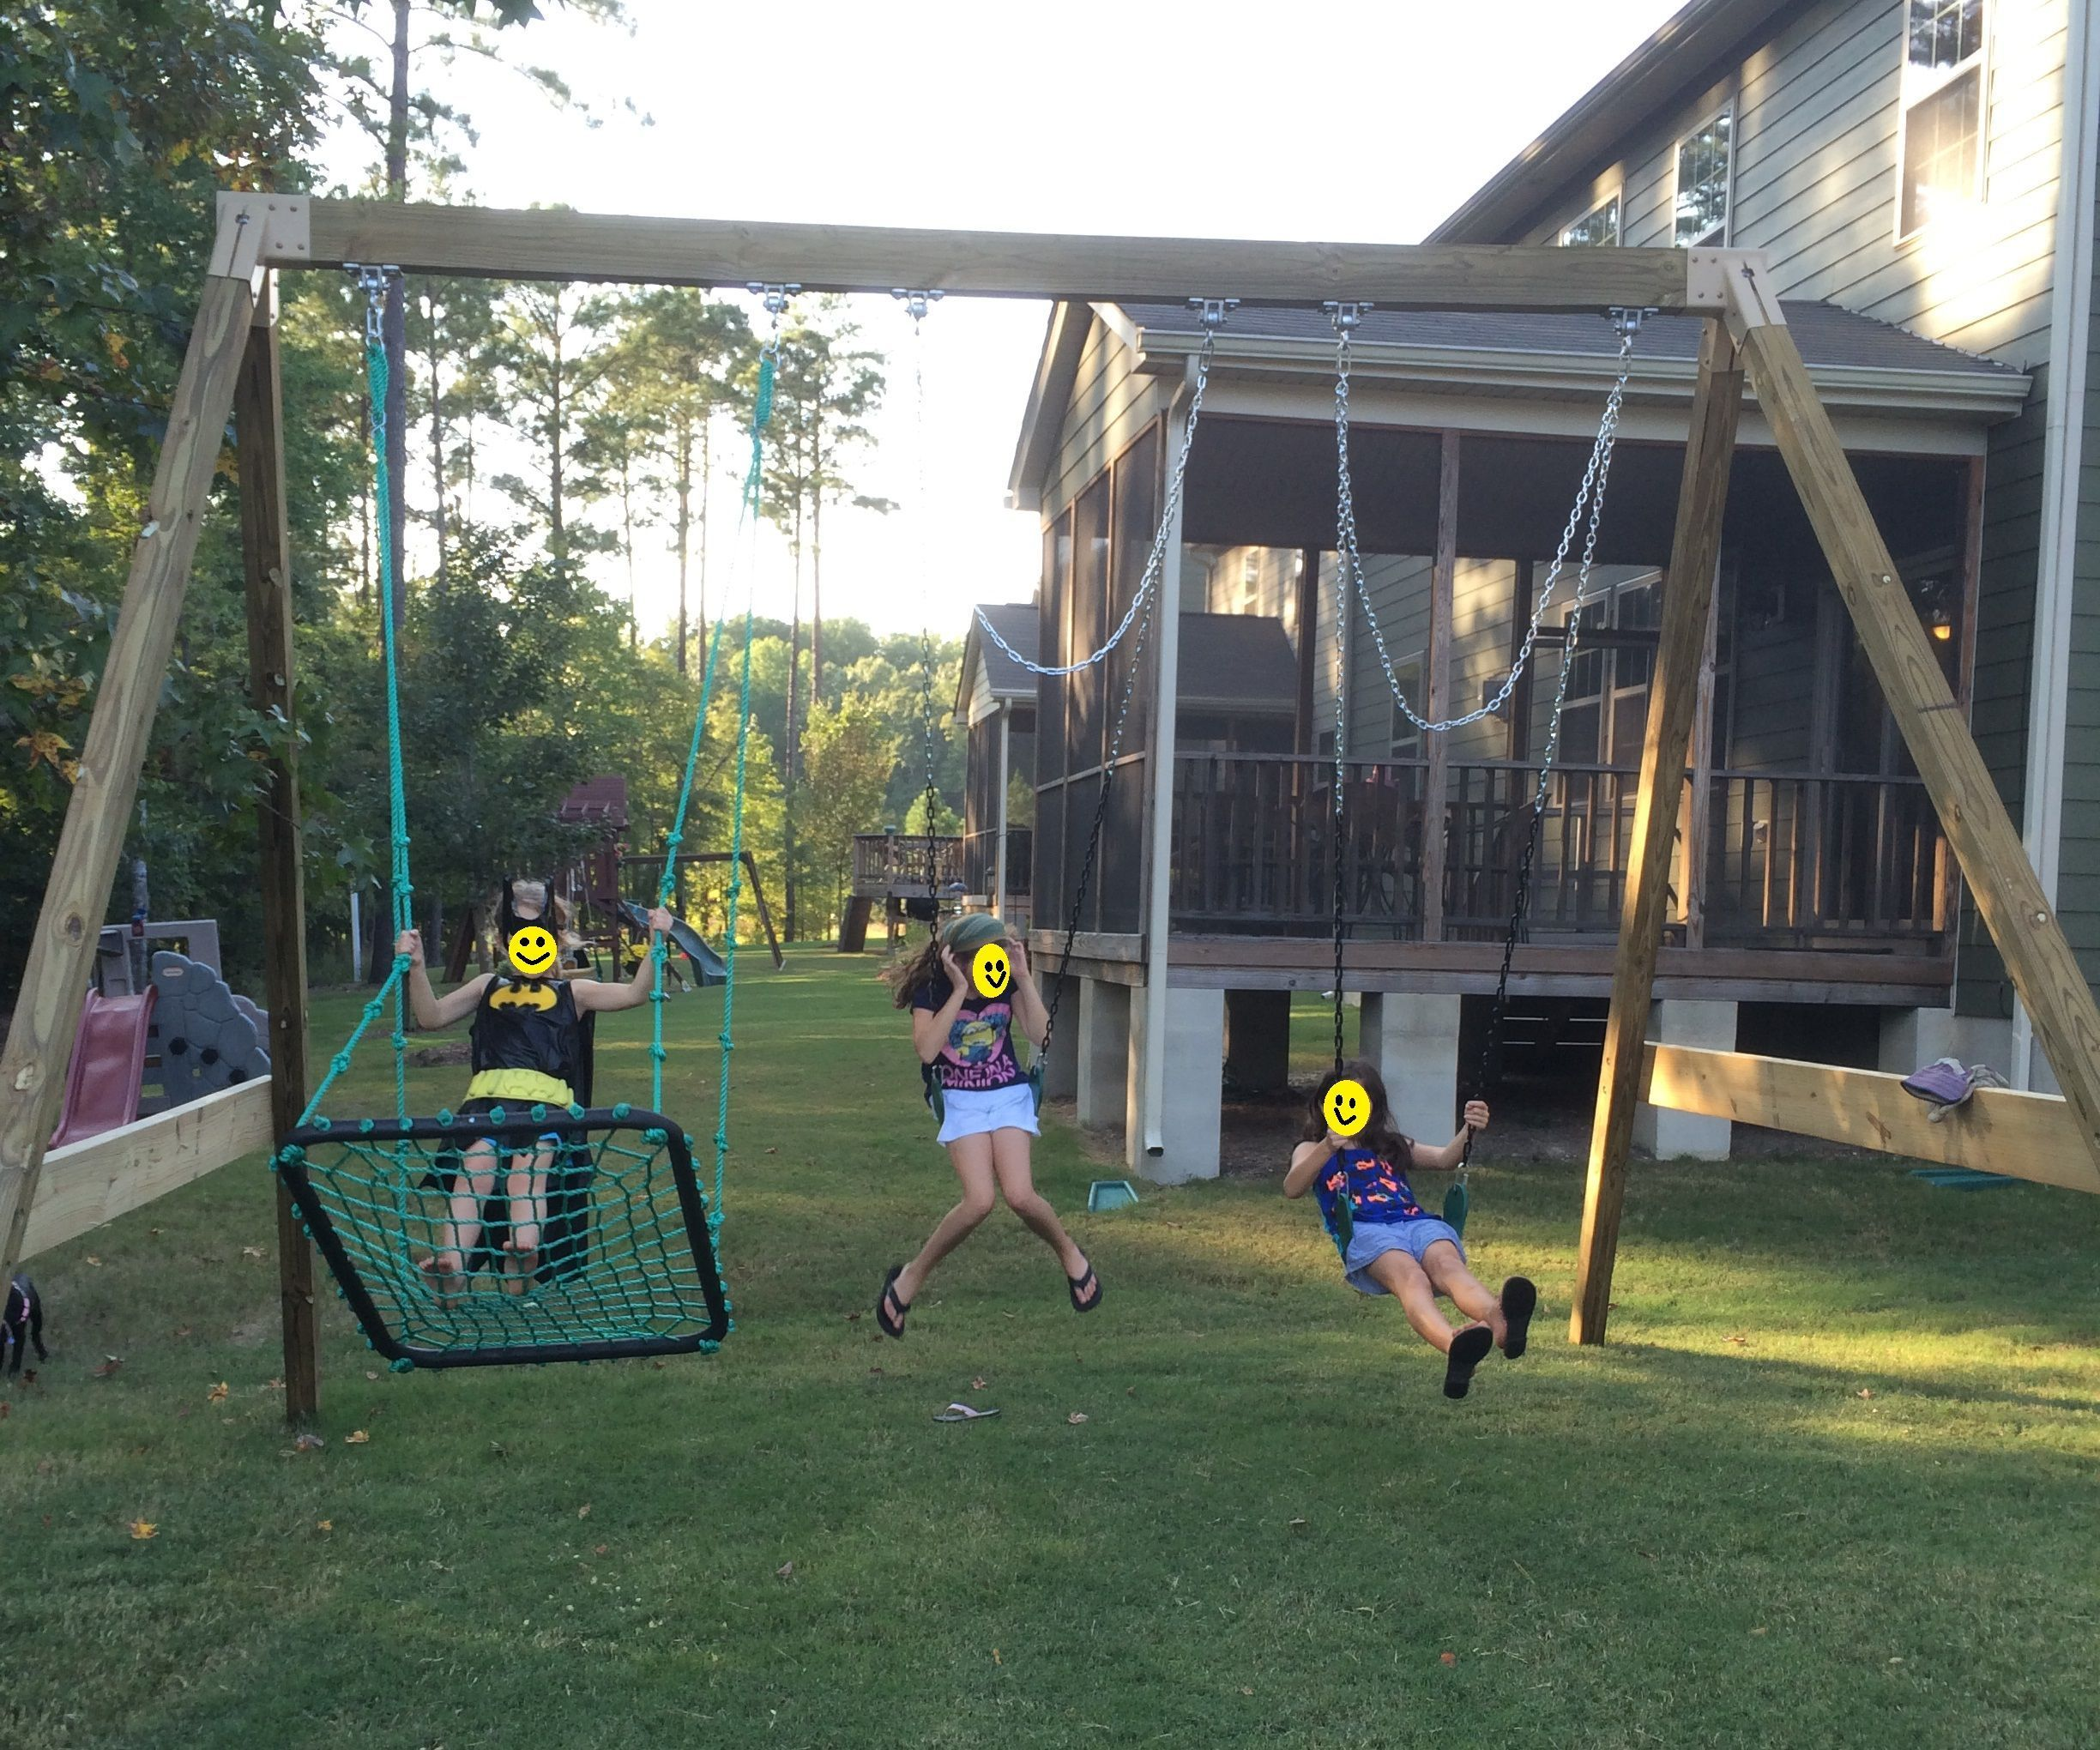 Free-standing A-Frame Swing Set: 8 Steps (with Pictures)